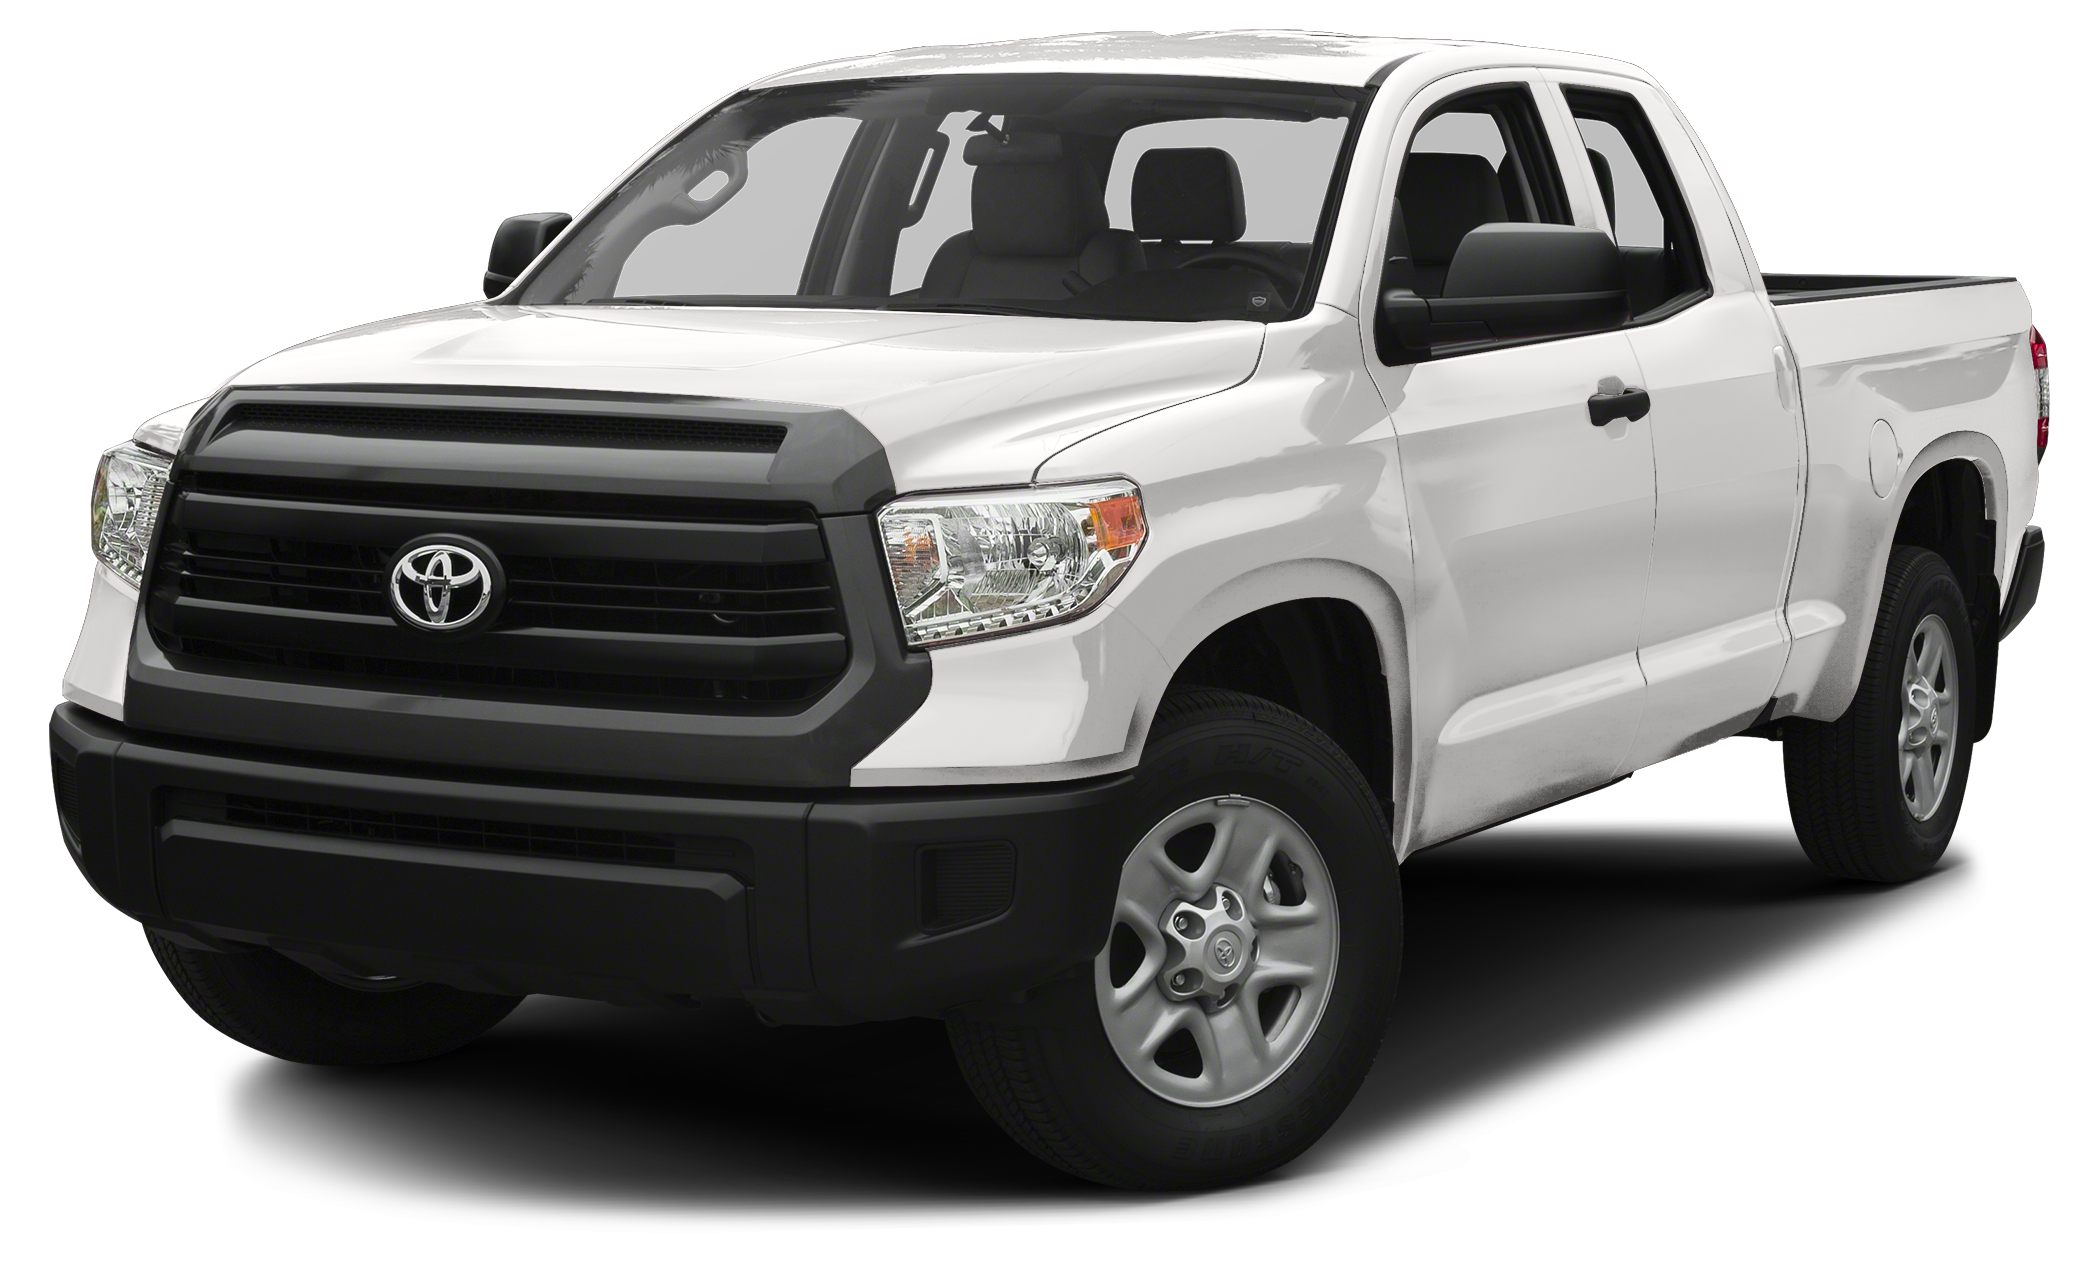 2016 Toyota Tundra SR Westboro Toyota is proud to present HASSLE FREE BUYING EXPERIENCE with upfro